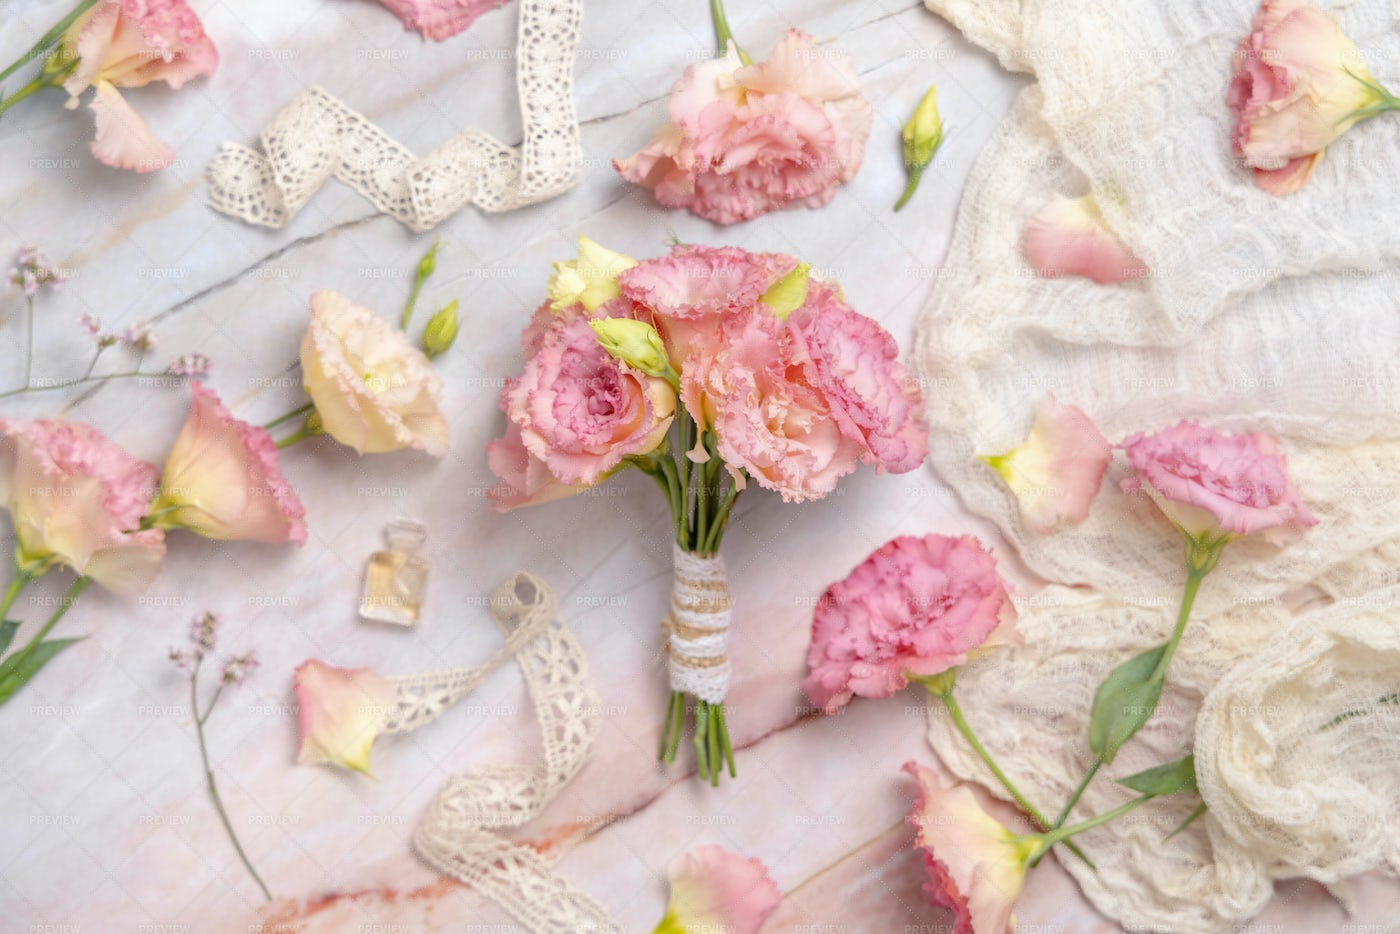 Pink Flowers Bouquet On Marble: Stock Photos